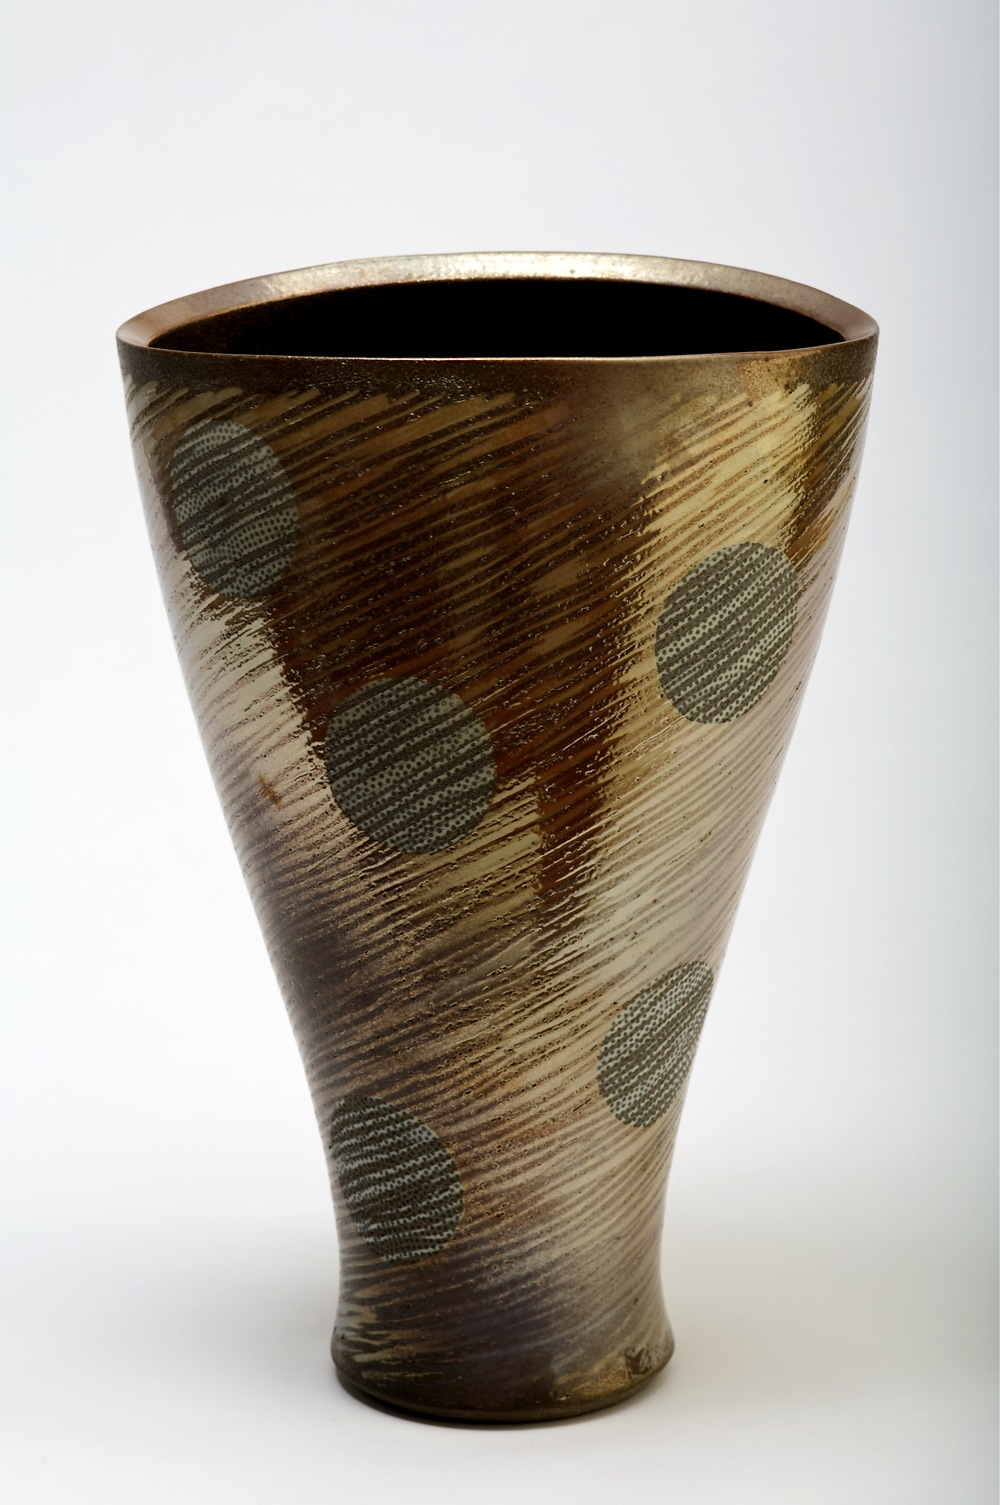 thrown and altered stoneware form.  incised pattern with inlaid slip.  Fired in charcoal with Mt Gibraltar granite lustre  420mm H